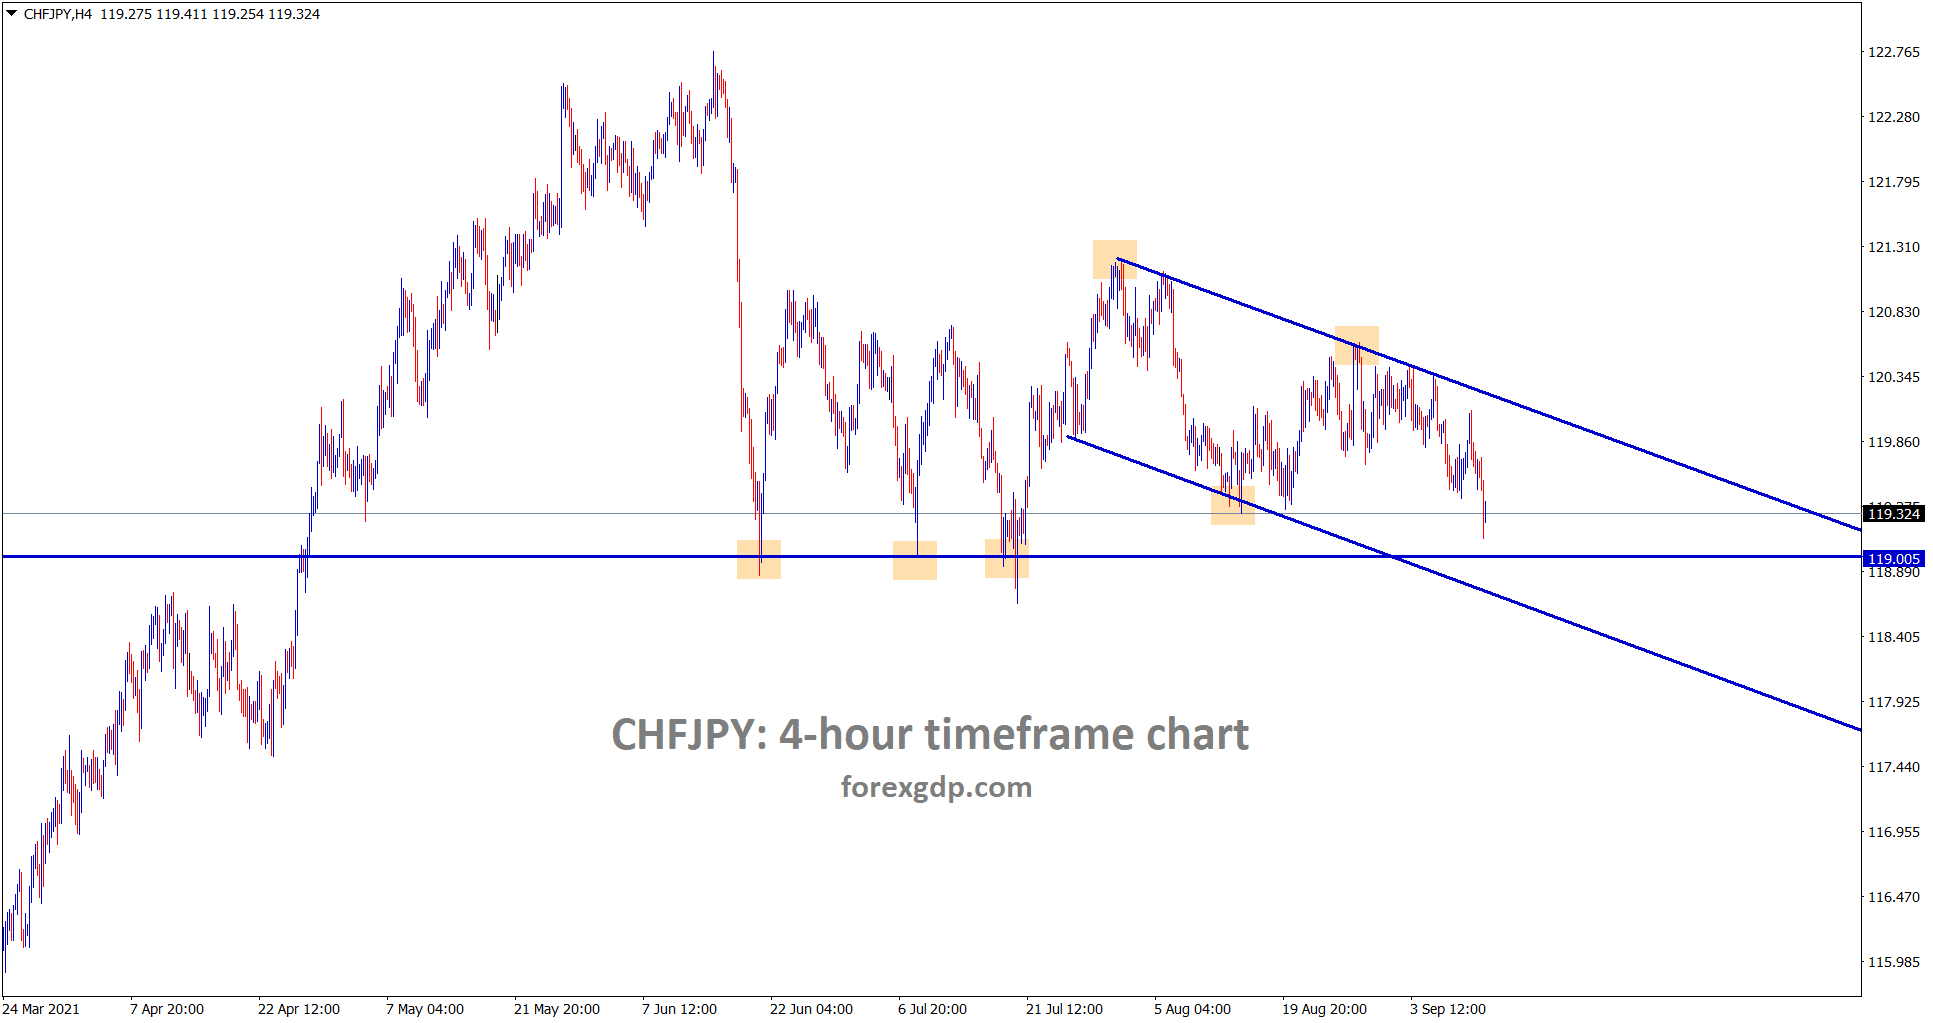 CHFJPY is moving towards the support area through the channel line